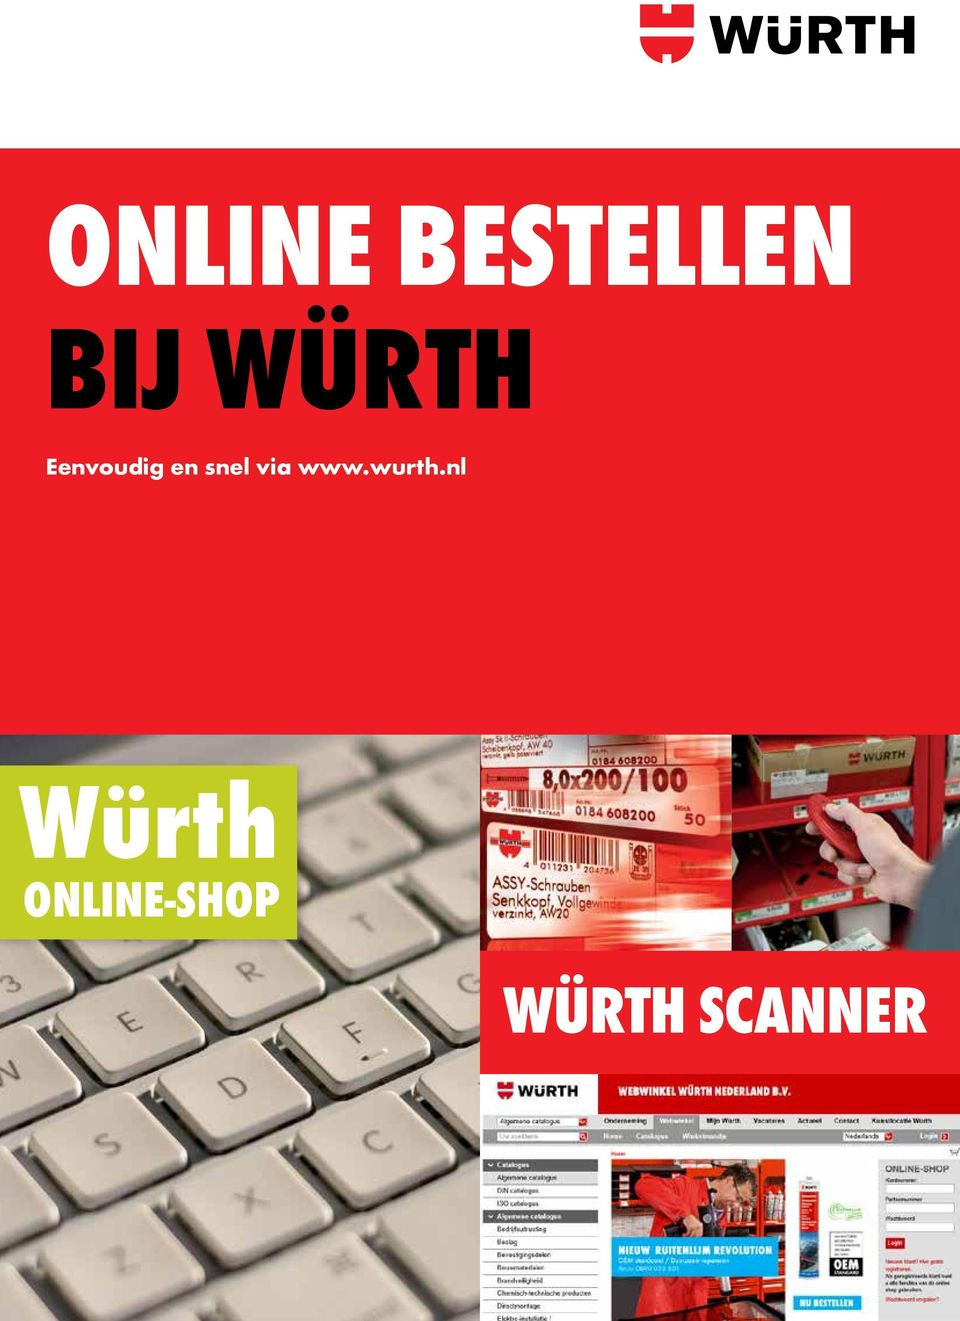 via www.wurth.